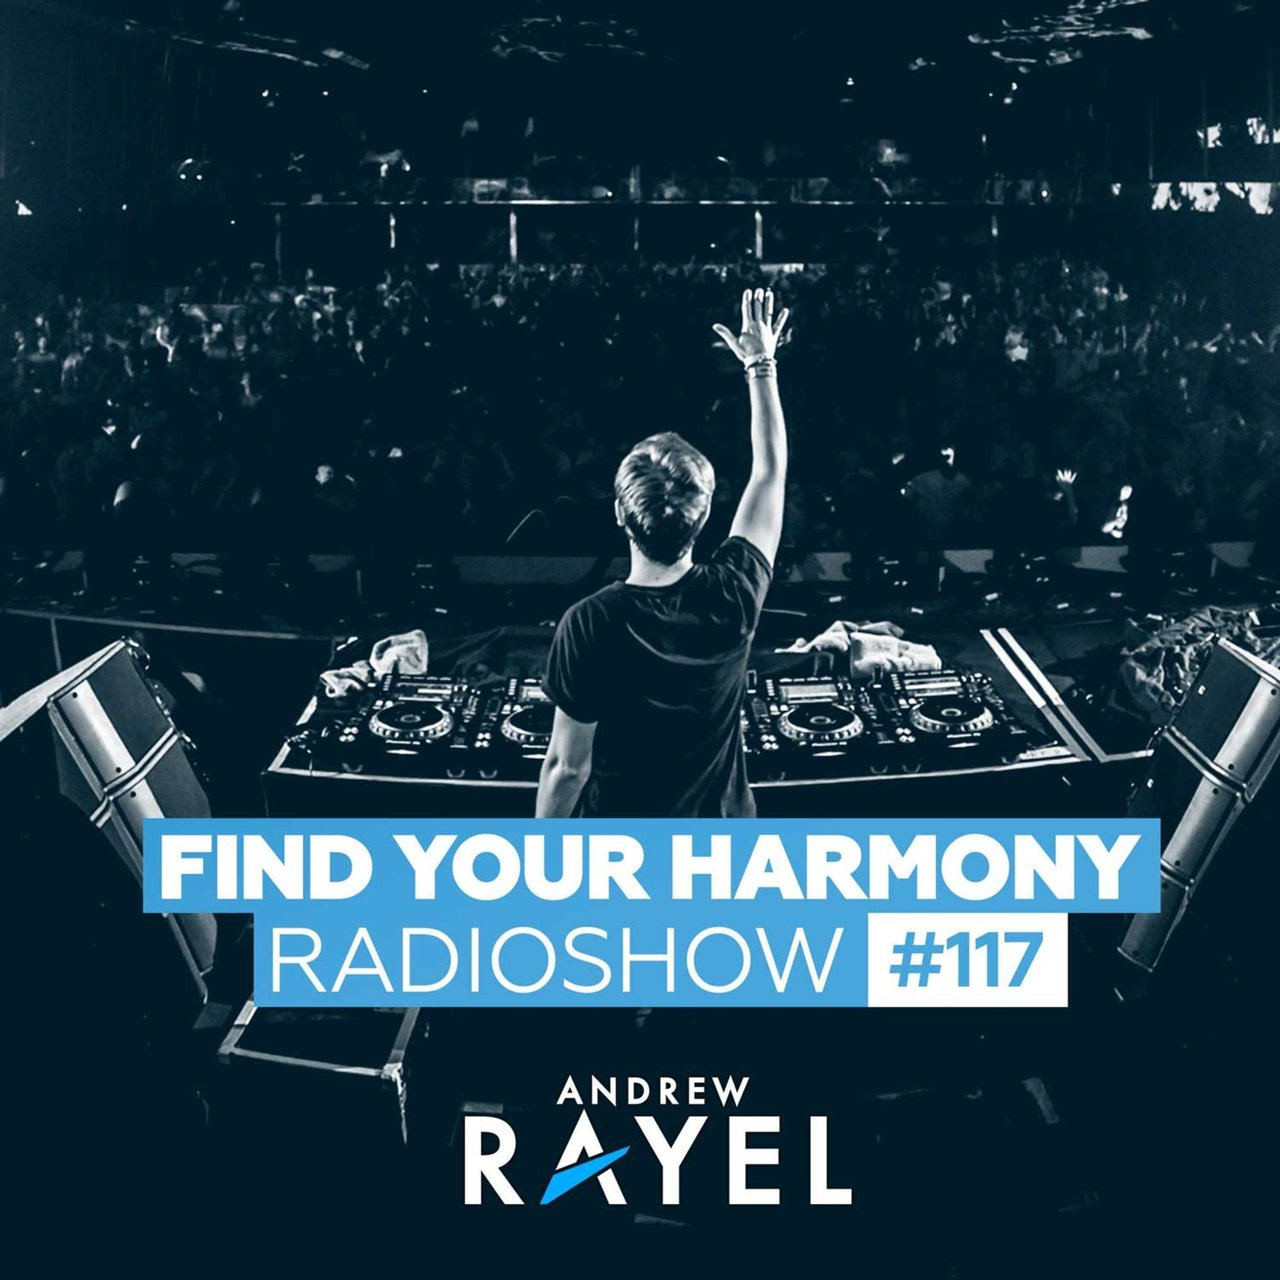 Find Your Harmony Radioshow #117